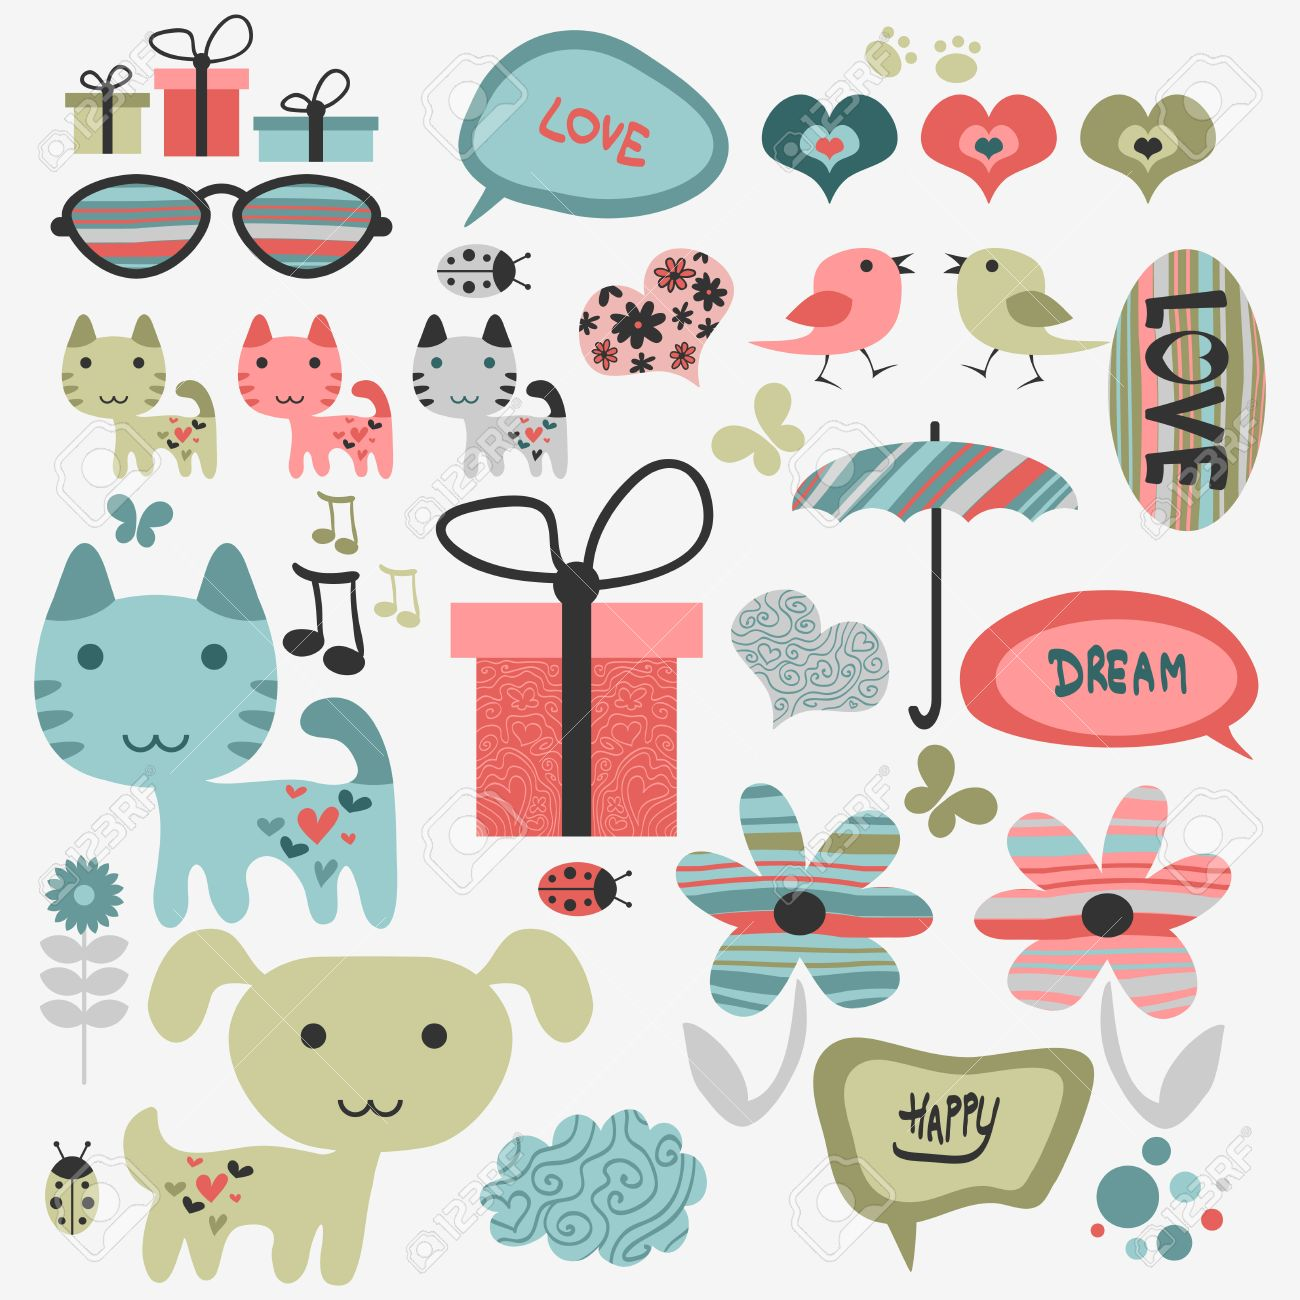 Set of cute scrapbook elements with animals.